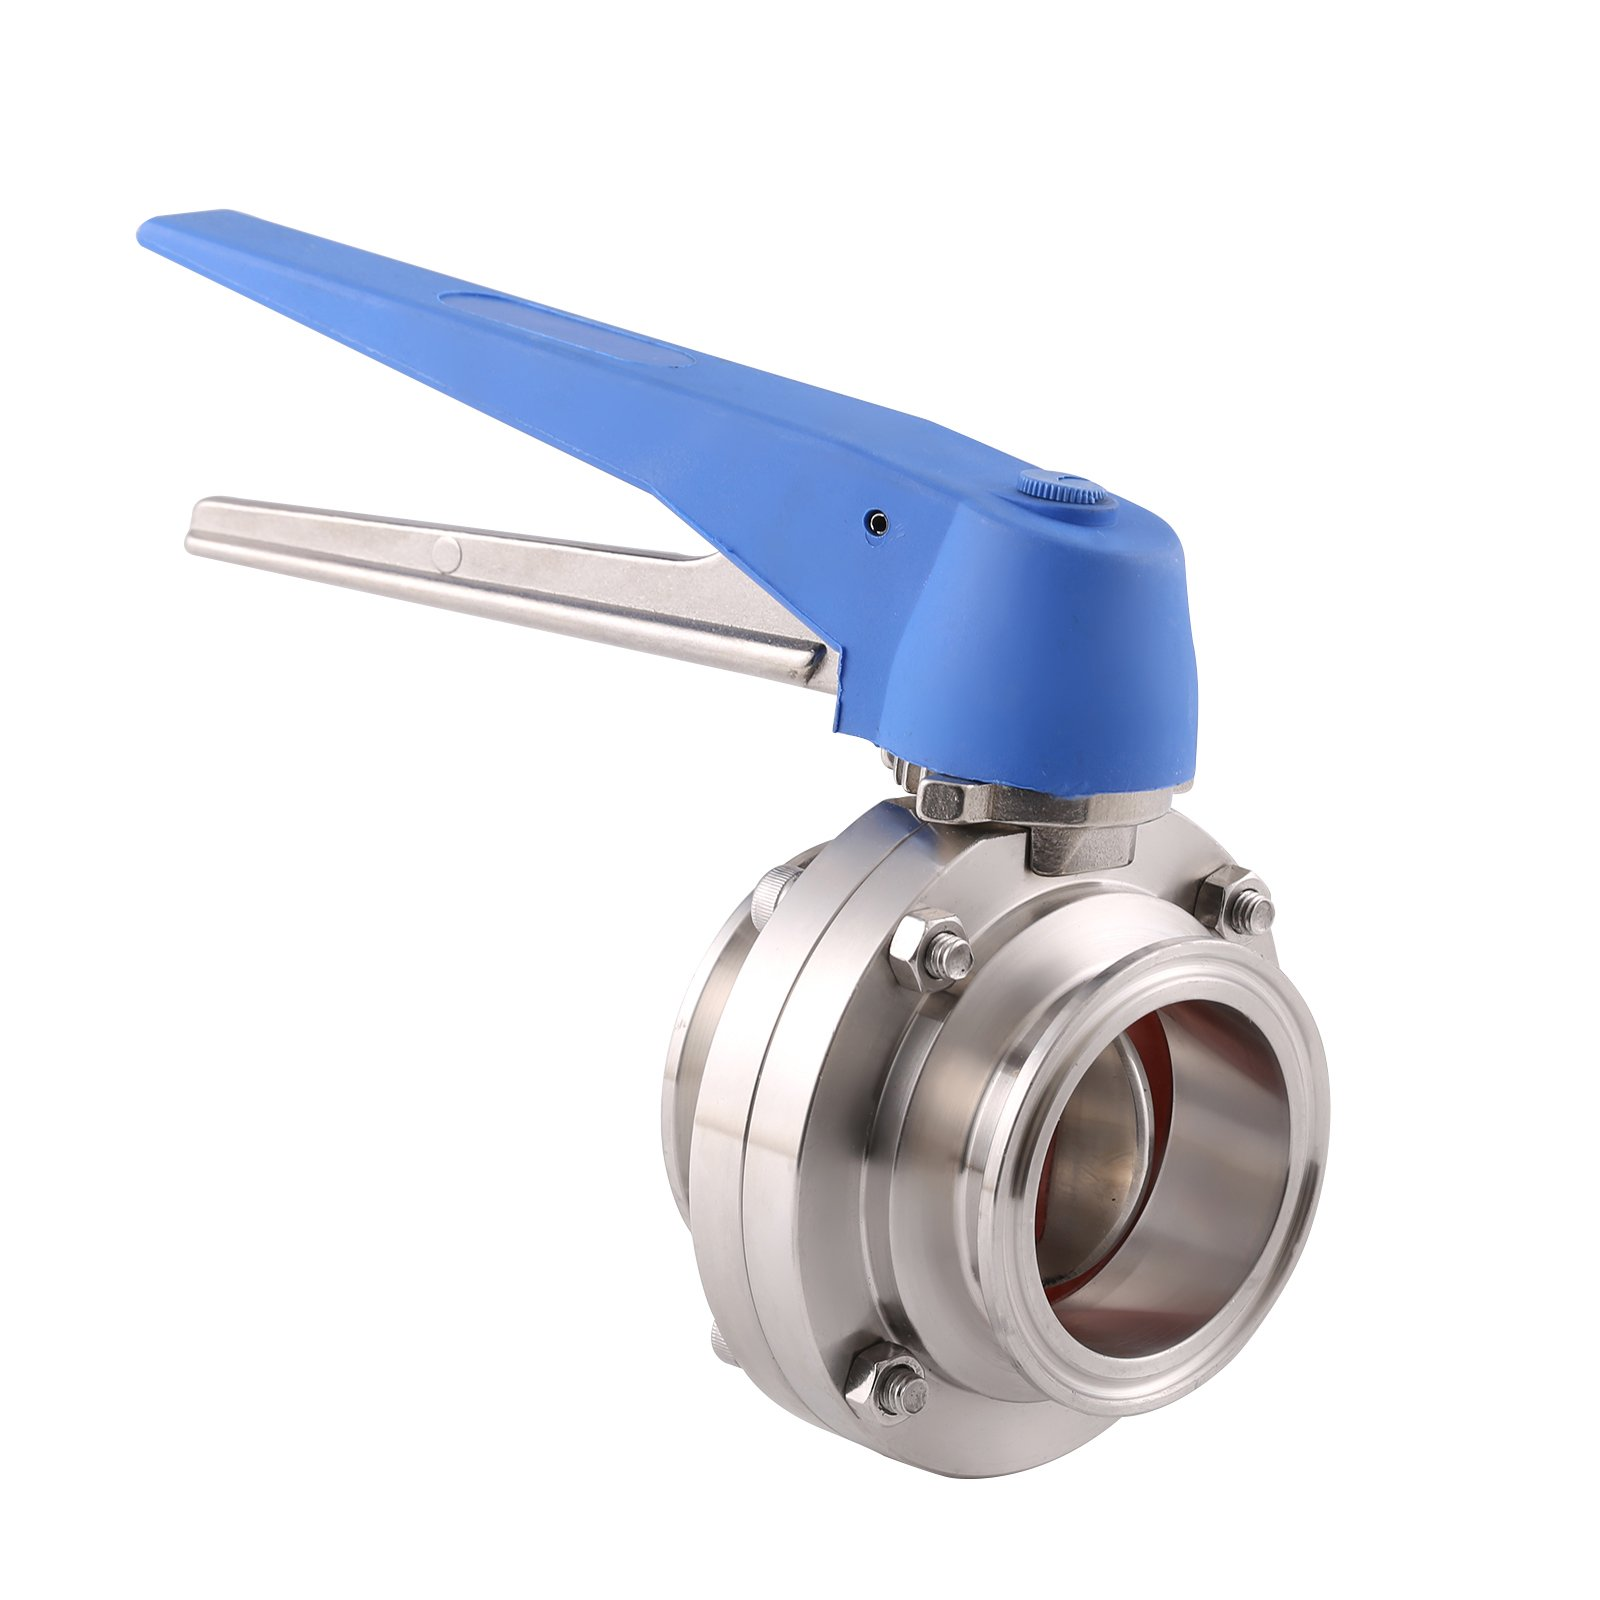 BOKYWOX 2'' Sanitary Stainless Steel 304 Tri Clamp Butterfly Valve with Trigger Handle and Silicon Seal